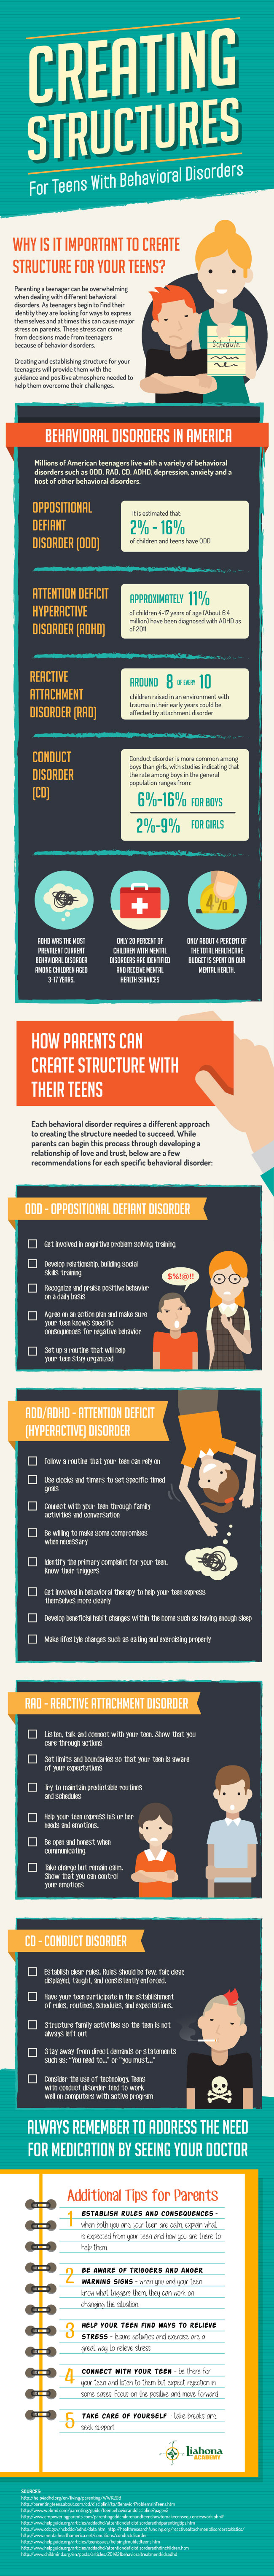 Creating Structure For Teens With Behavioral Disorders - Infographic